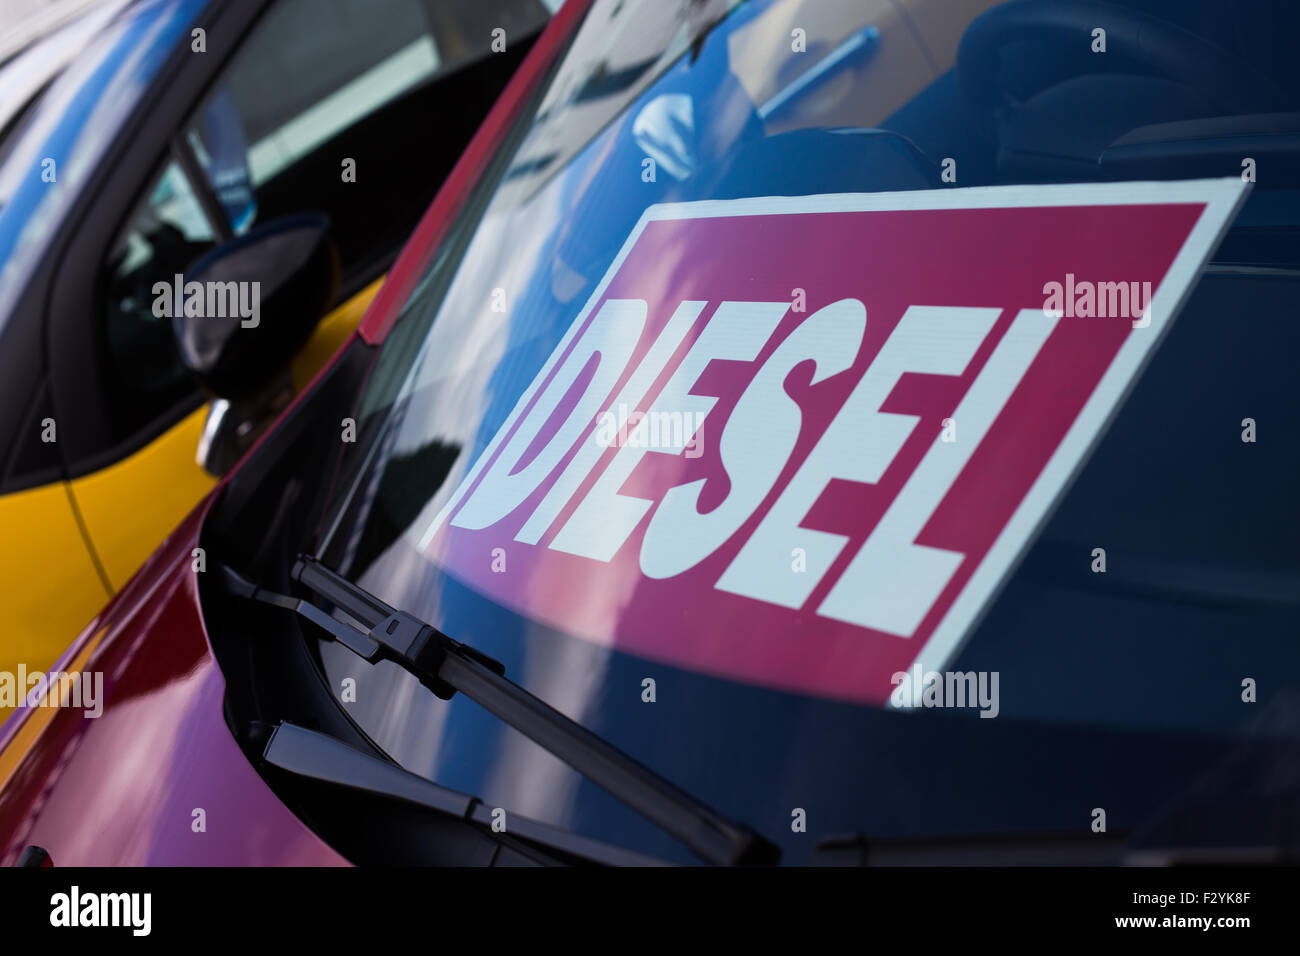 diesel sign in window of for sale car - Stock Image